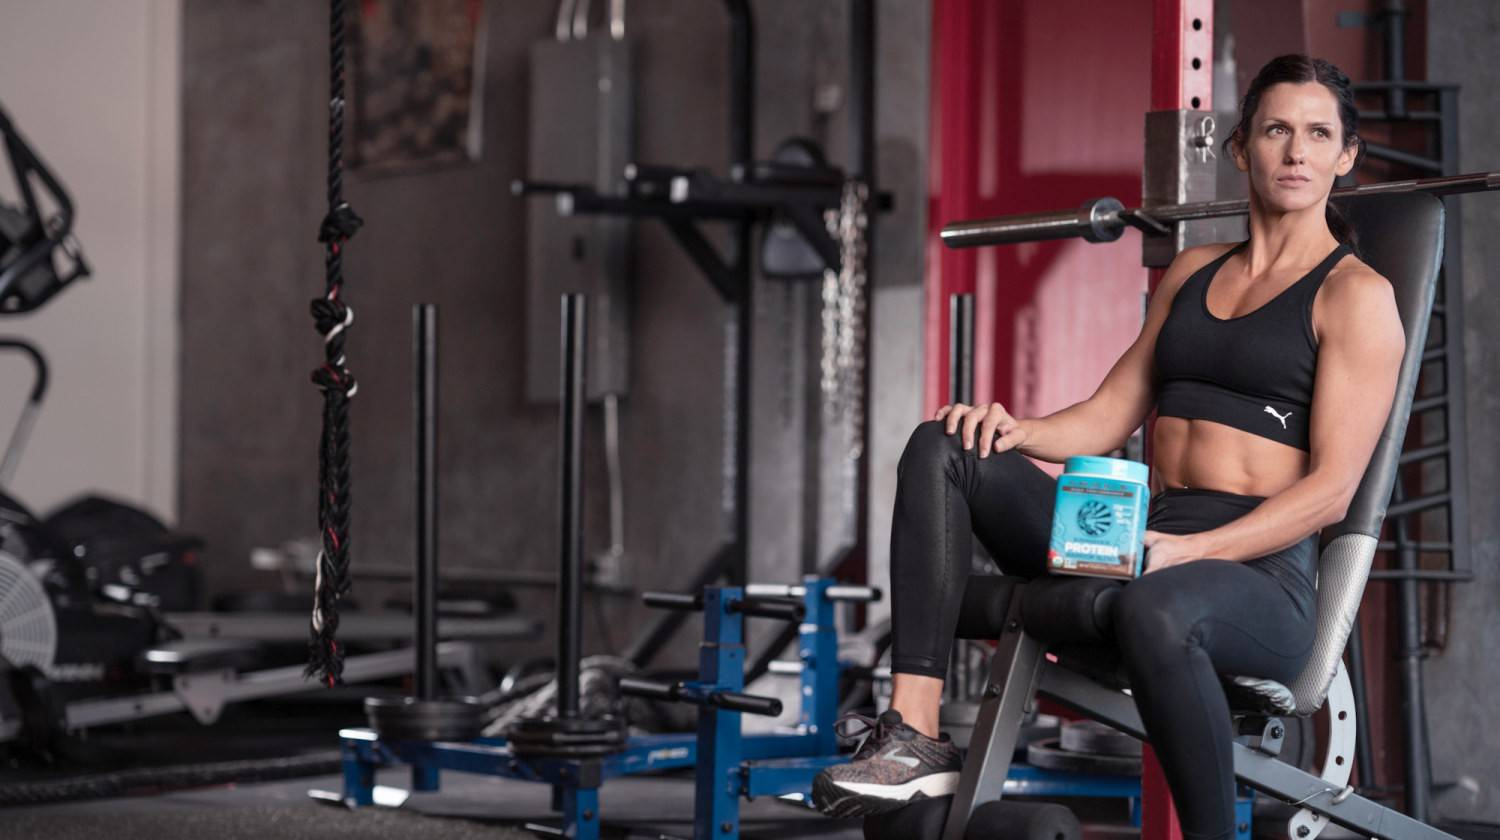 Ralani holding Warrior blend protein powder sitting at the gym   The Best Protein Powder for Women   protein powder for women   Featured